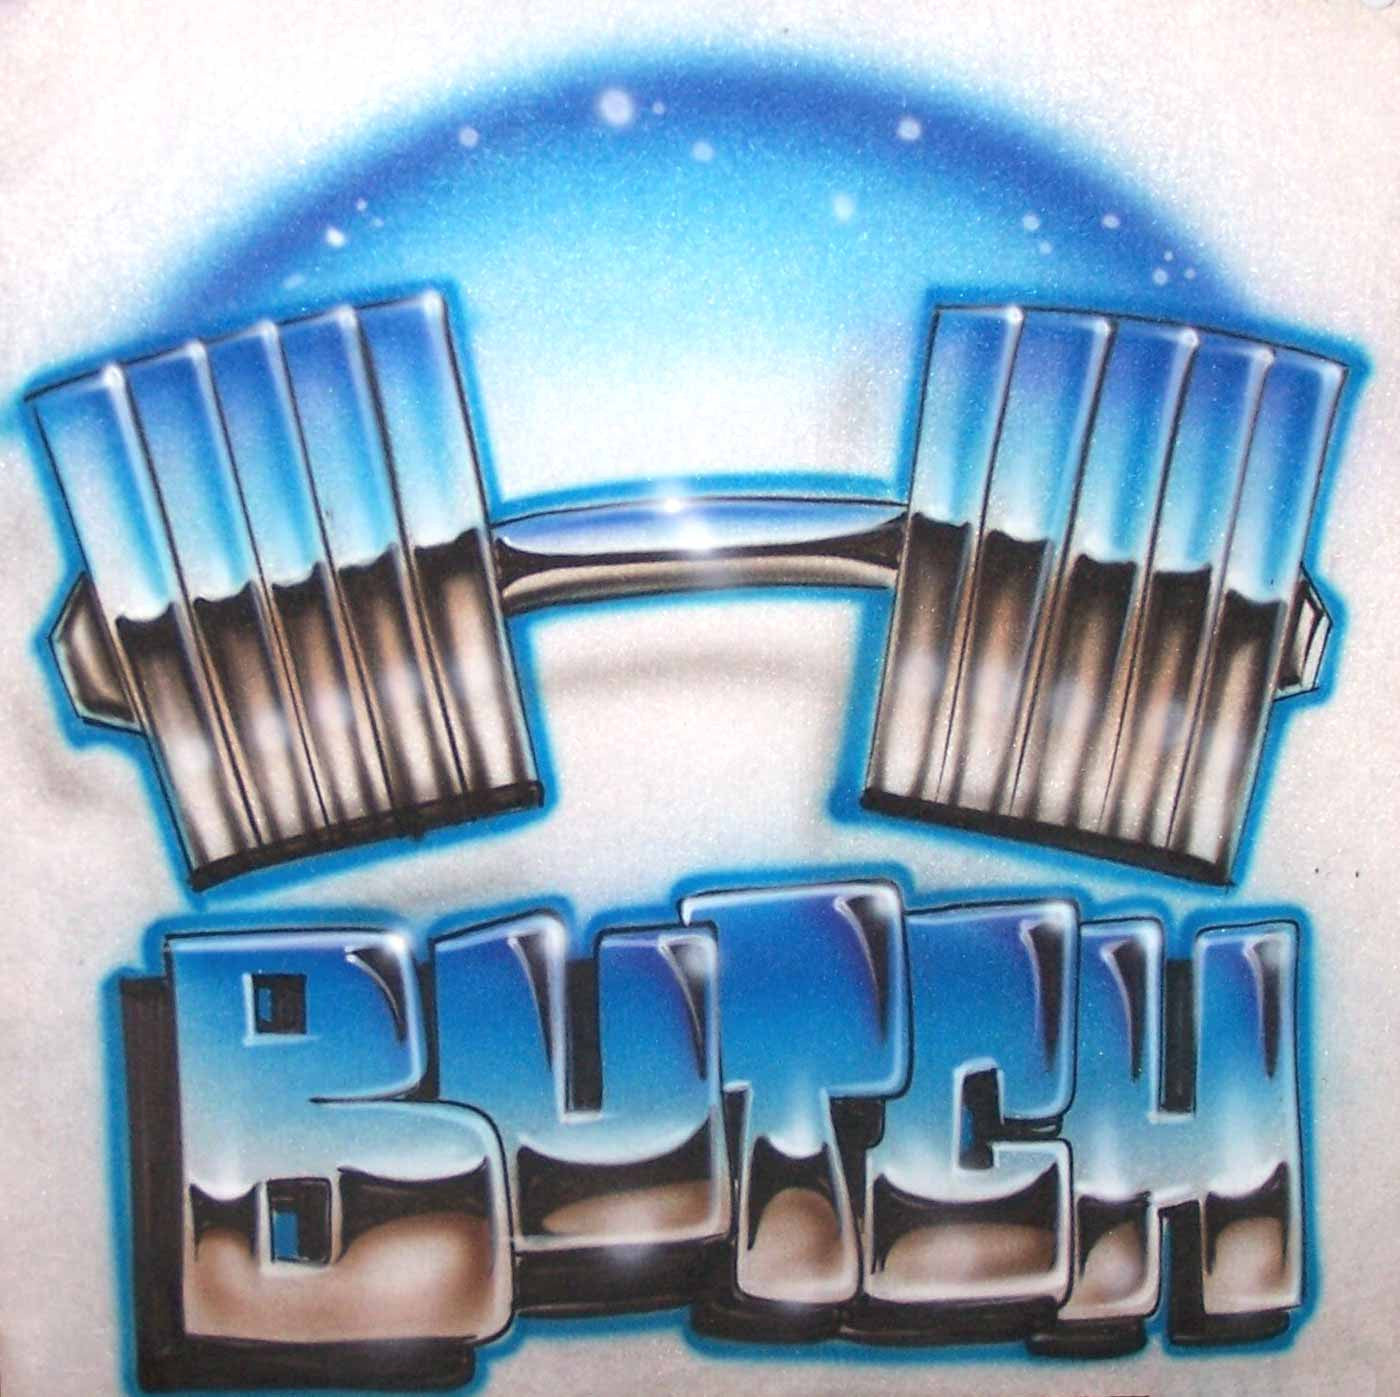 Airbrushed Dumbbell Personalized Shirt